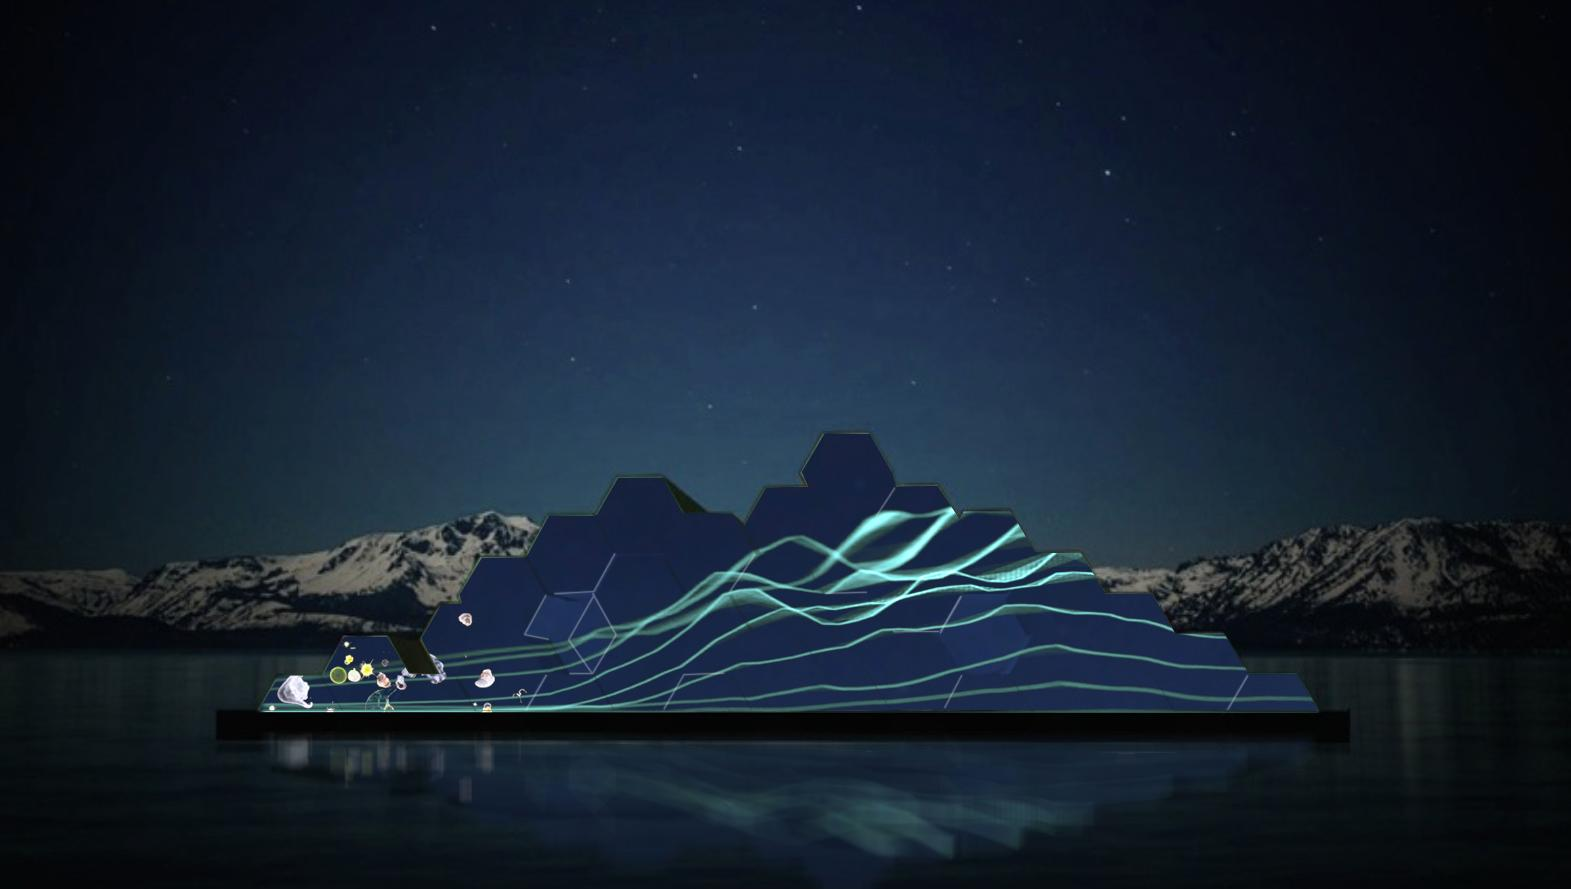 A rendering of the floating sculpture depicting the water temperature and depth of the mixing and periphyton. (Courtesy: Tahoe Public Art)